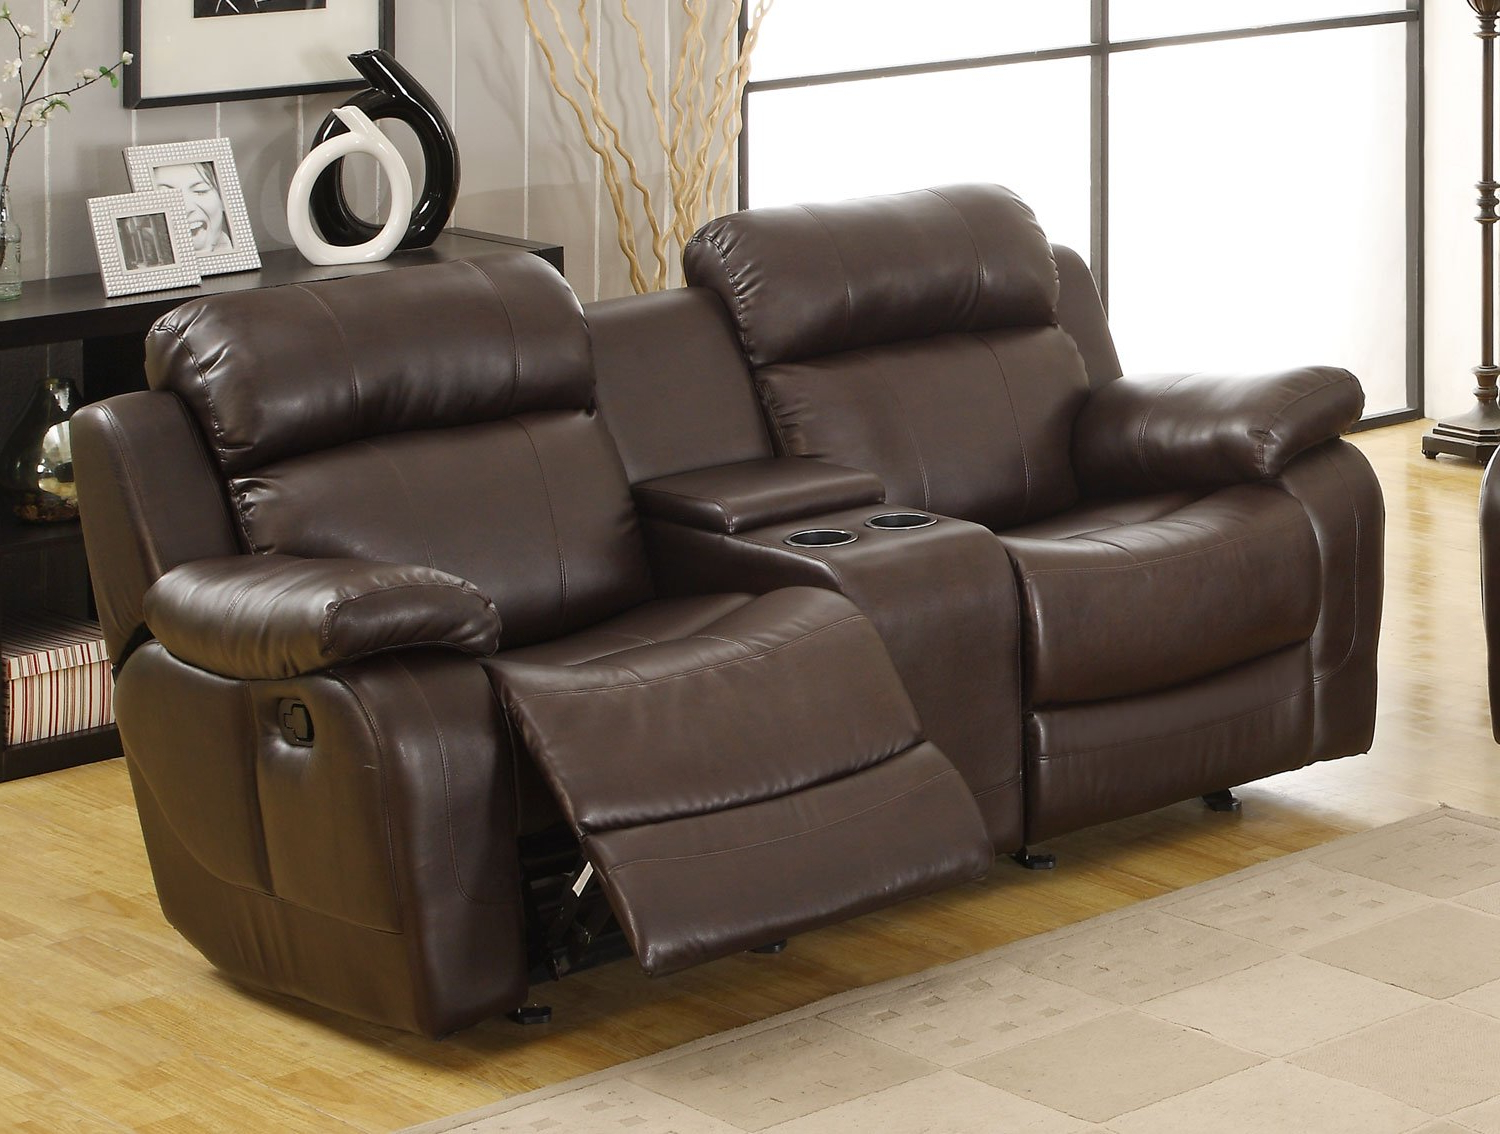 Preferred Double Glider Loveseats Pertaining To Marille Dark Brown Double Glider Reclining Loveseat (View 28 of 30)